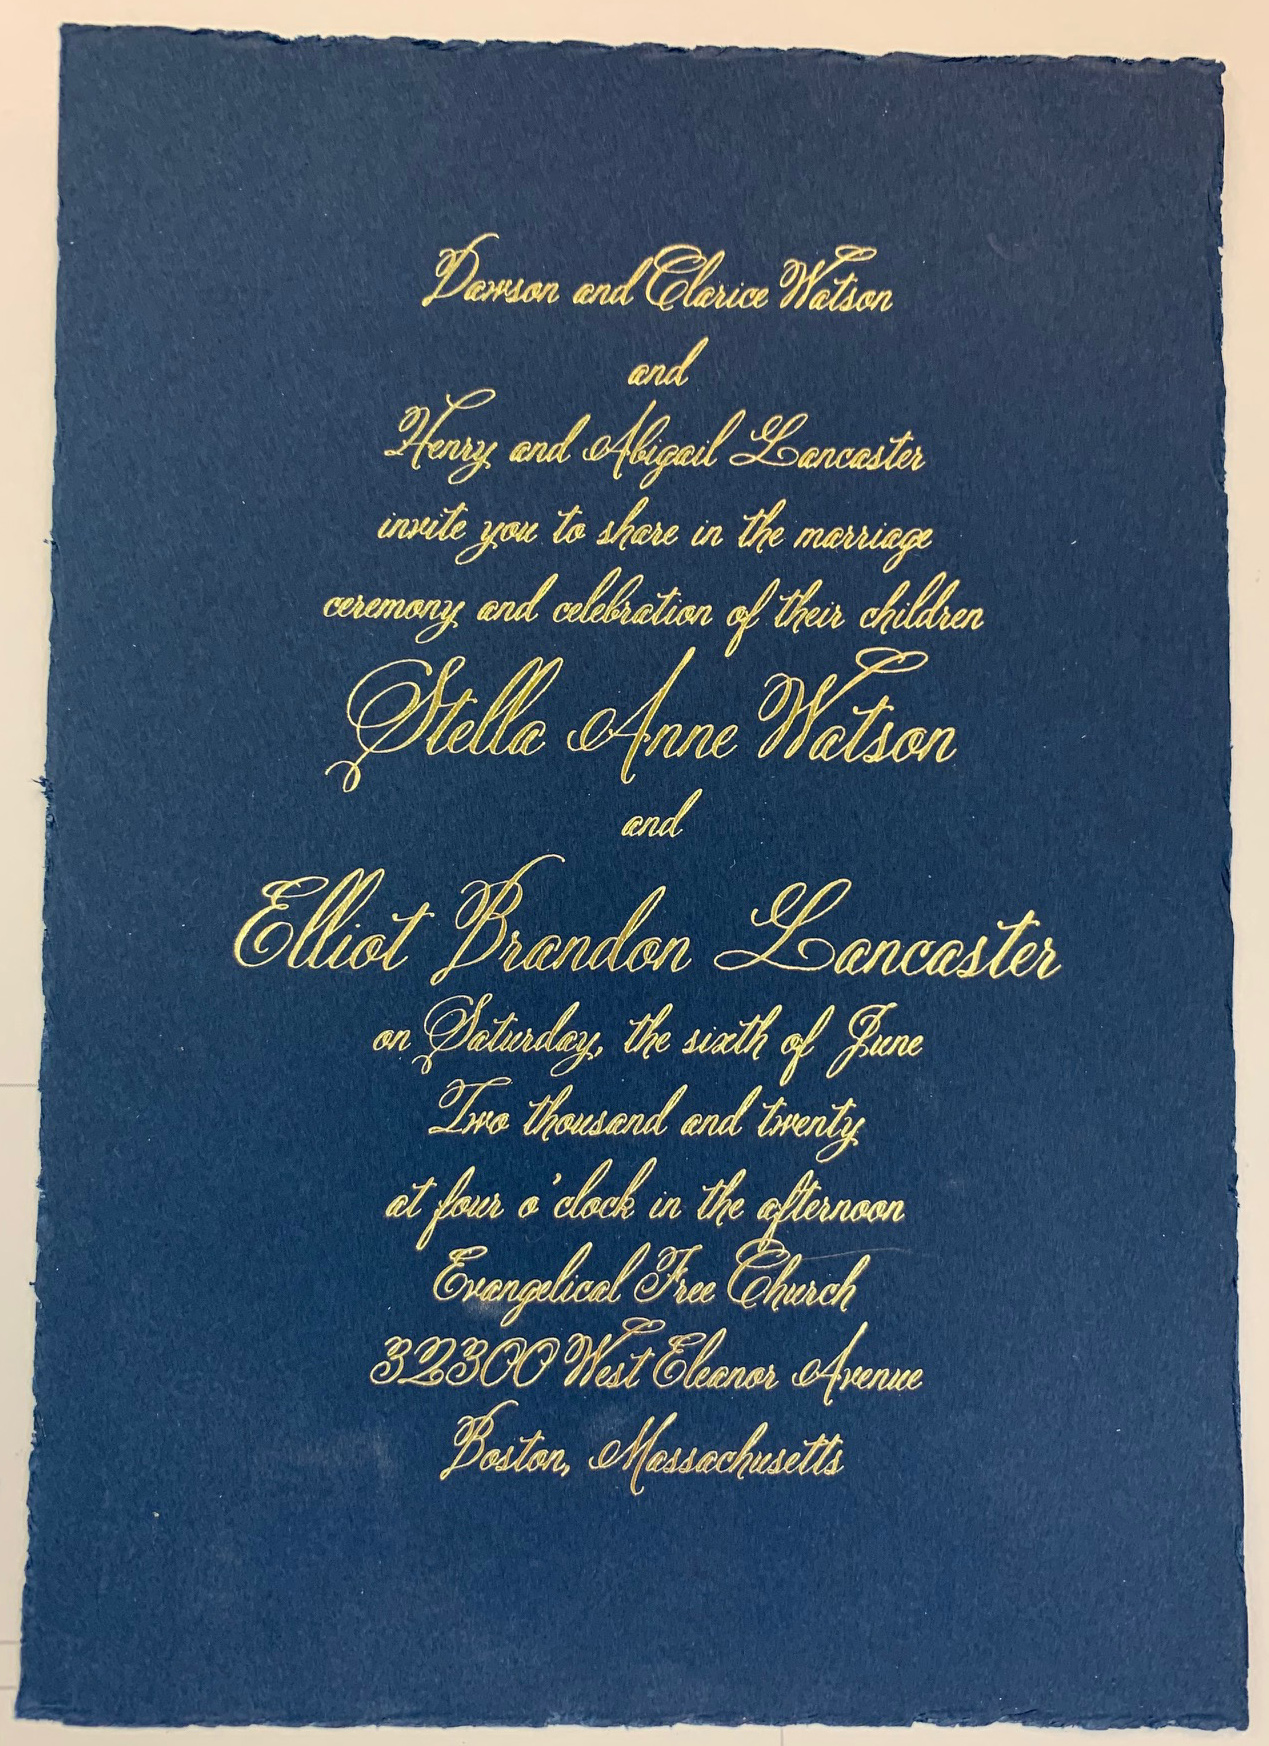 Let the color pop! - Leave the traditional colors behind and take a look at this special dark blue offering. Offered in 171 lb Midnight Blue with a natural deckled edge, this invitation is sure to pop out of the envelope and delight your guests! Offered only in foil printing, the gold leaf color simple leaps off the elegant paper to excite your guests for your big day!Response and accessory cards come in a beautifully contrasting Ecru Vellum with a navy blue colored deckled edge. The contrast is an excellent combination to the lovely dark blue invitation card.